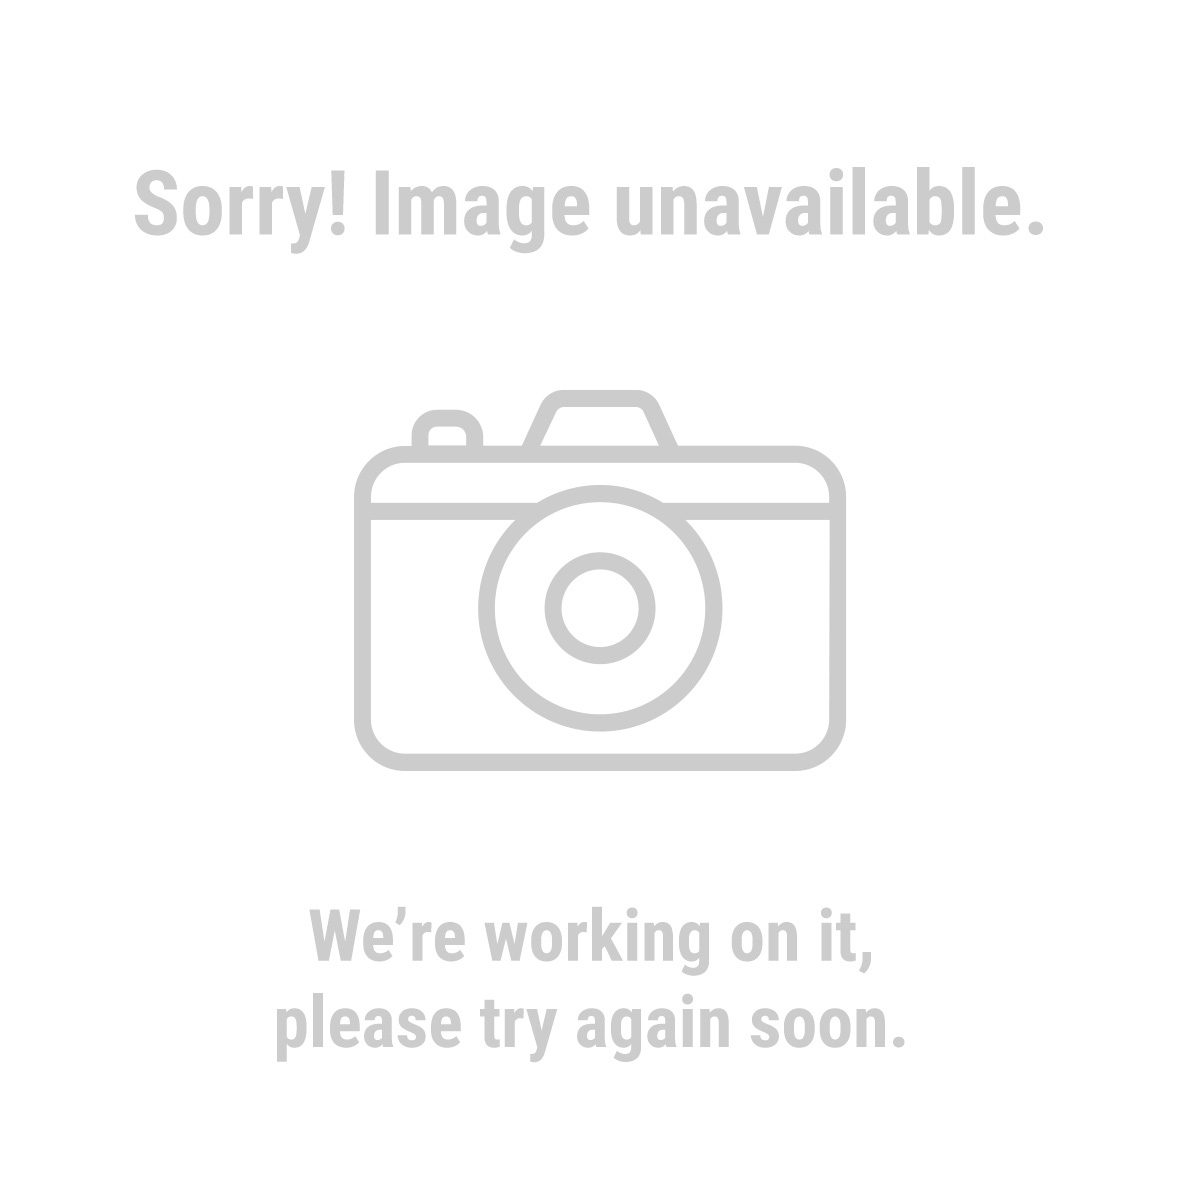 Chicago Electric 45283 25 Ft. Outdoor Extension Cord